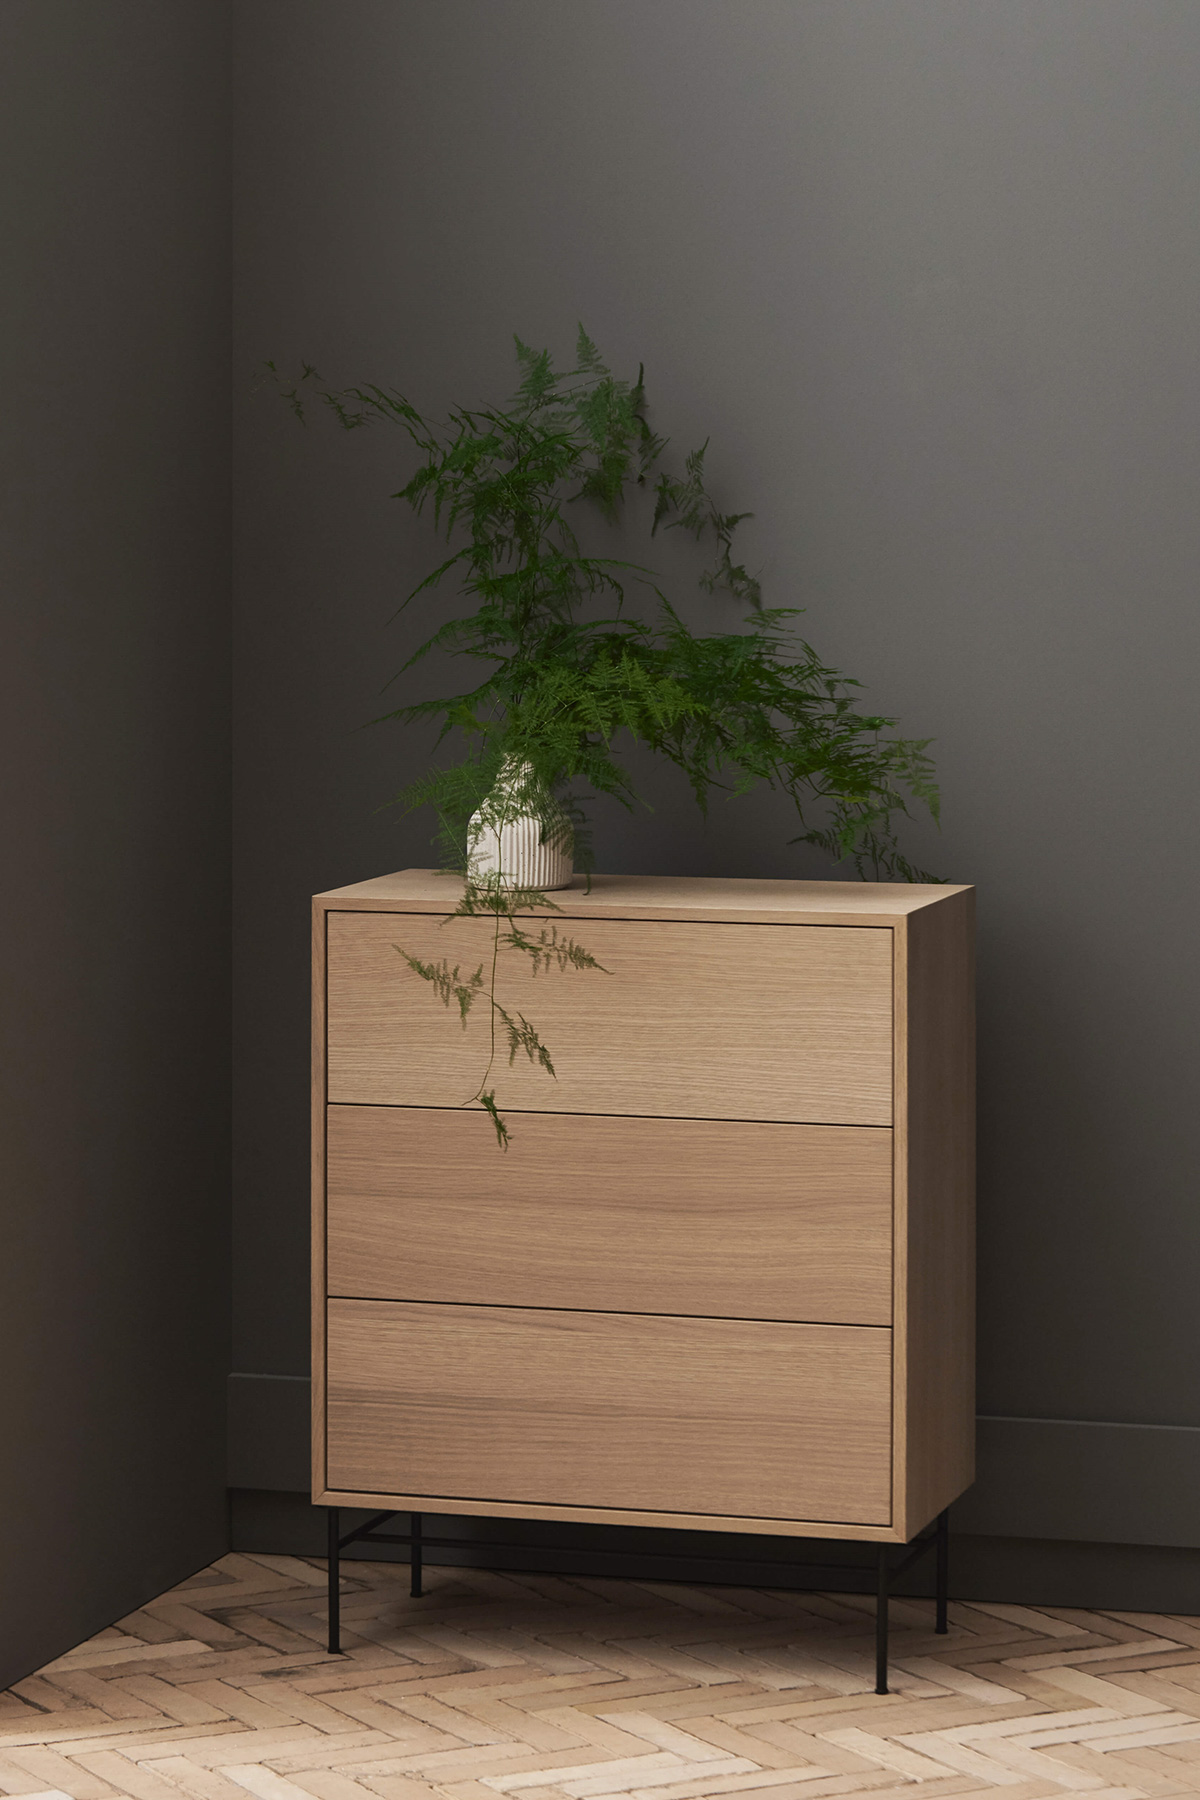 Bolia, Case minimal oak chest of drawers